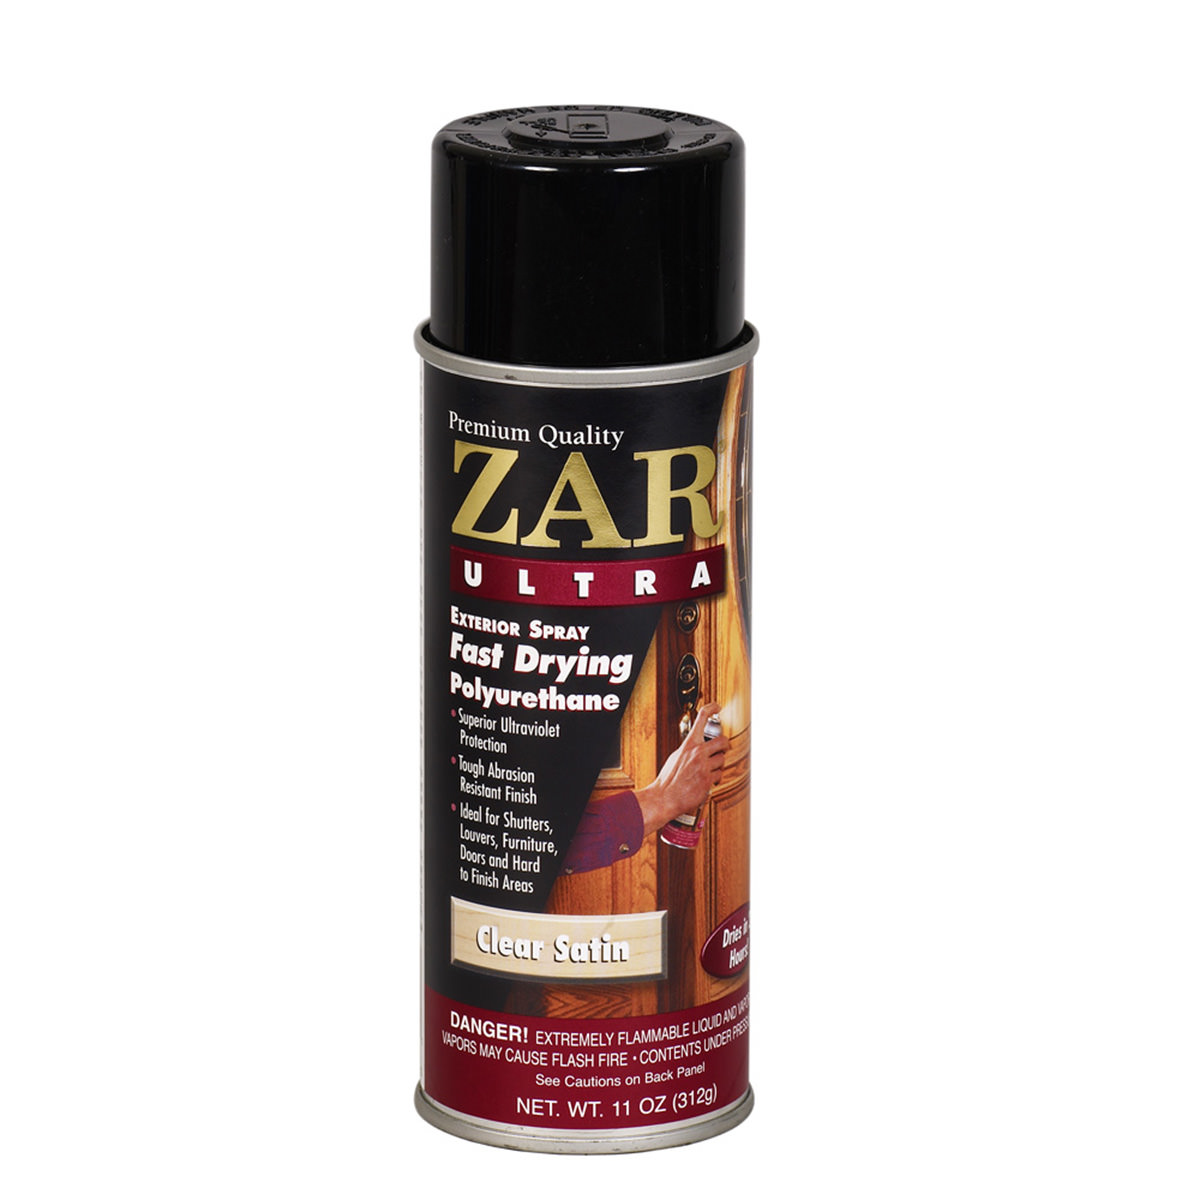 Zar exterior 267 polyurethane satin finish spray for Exterior polyurethane wood finish